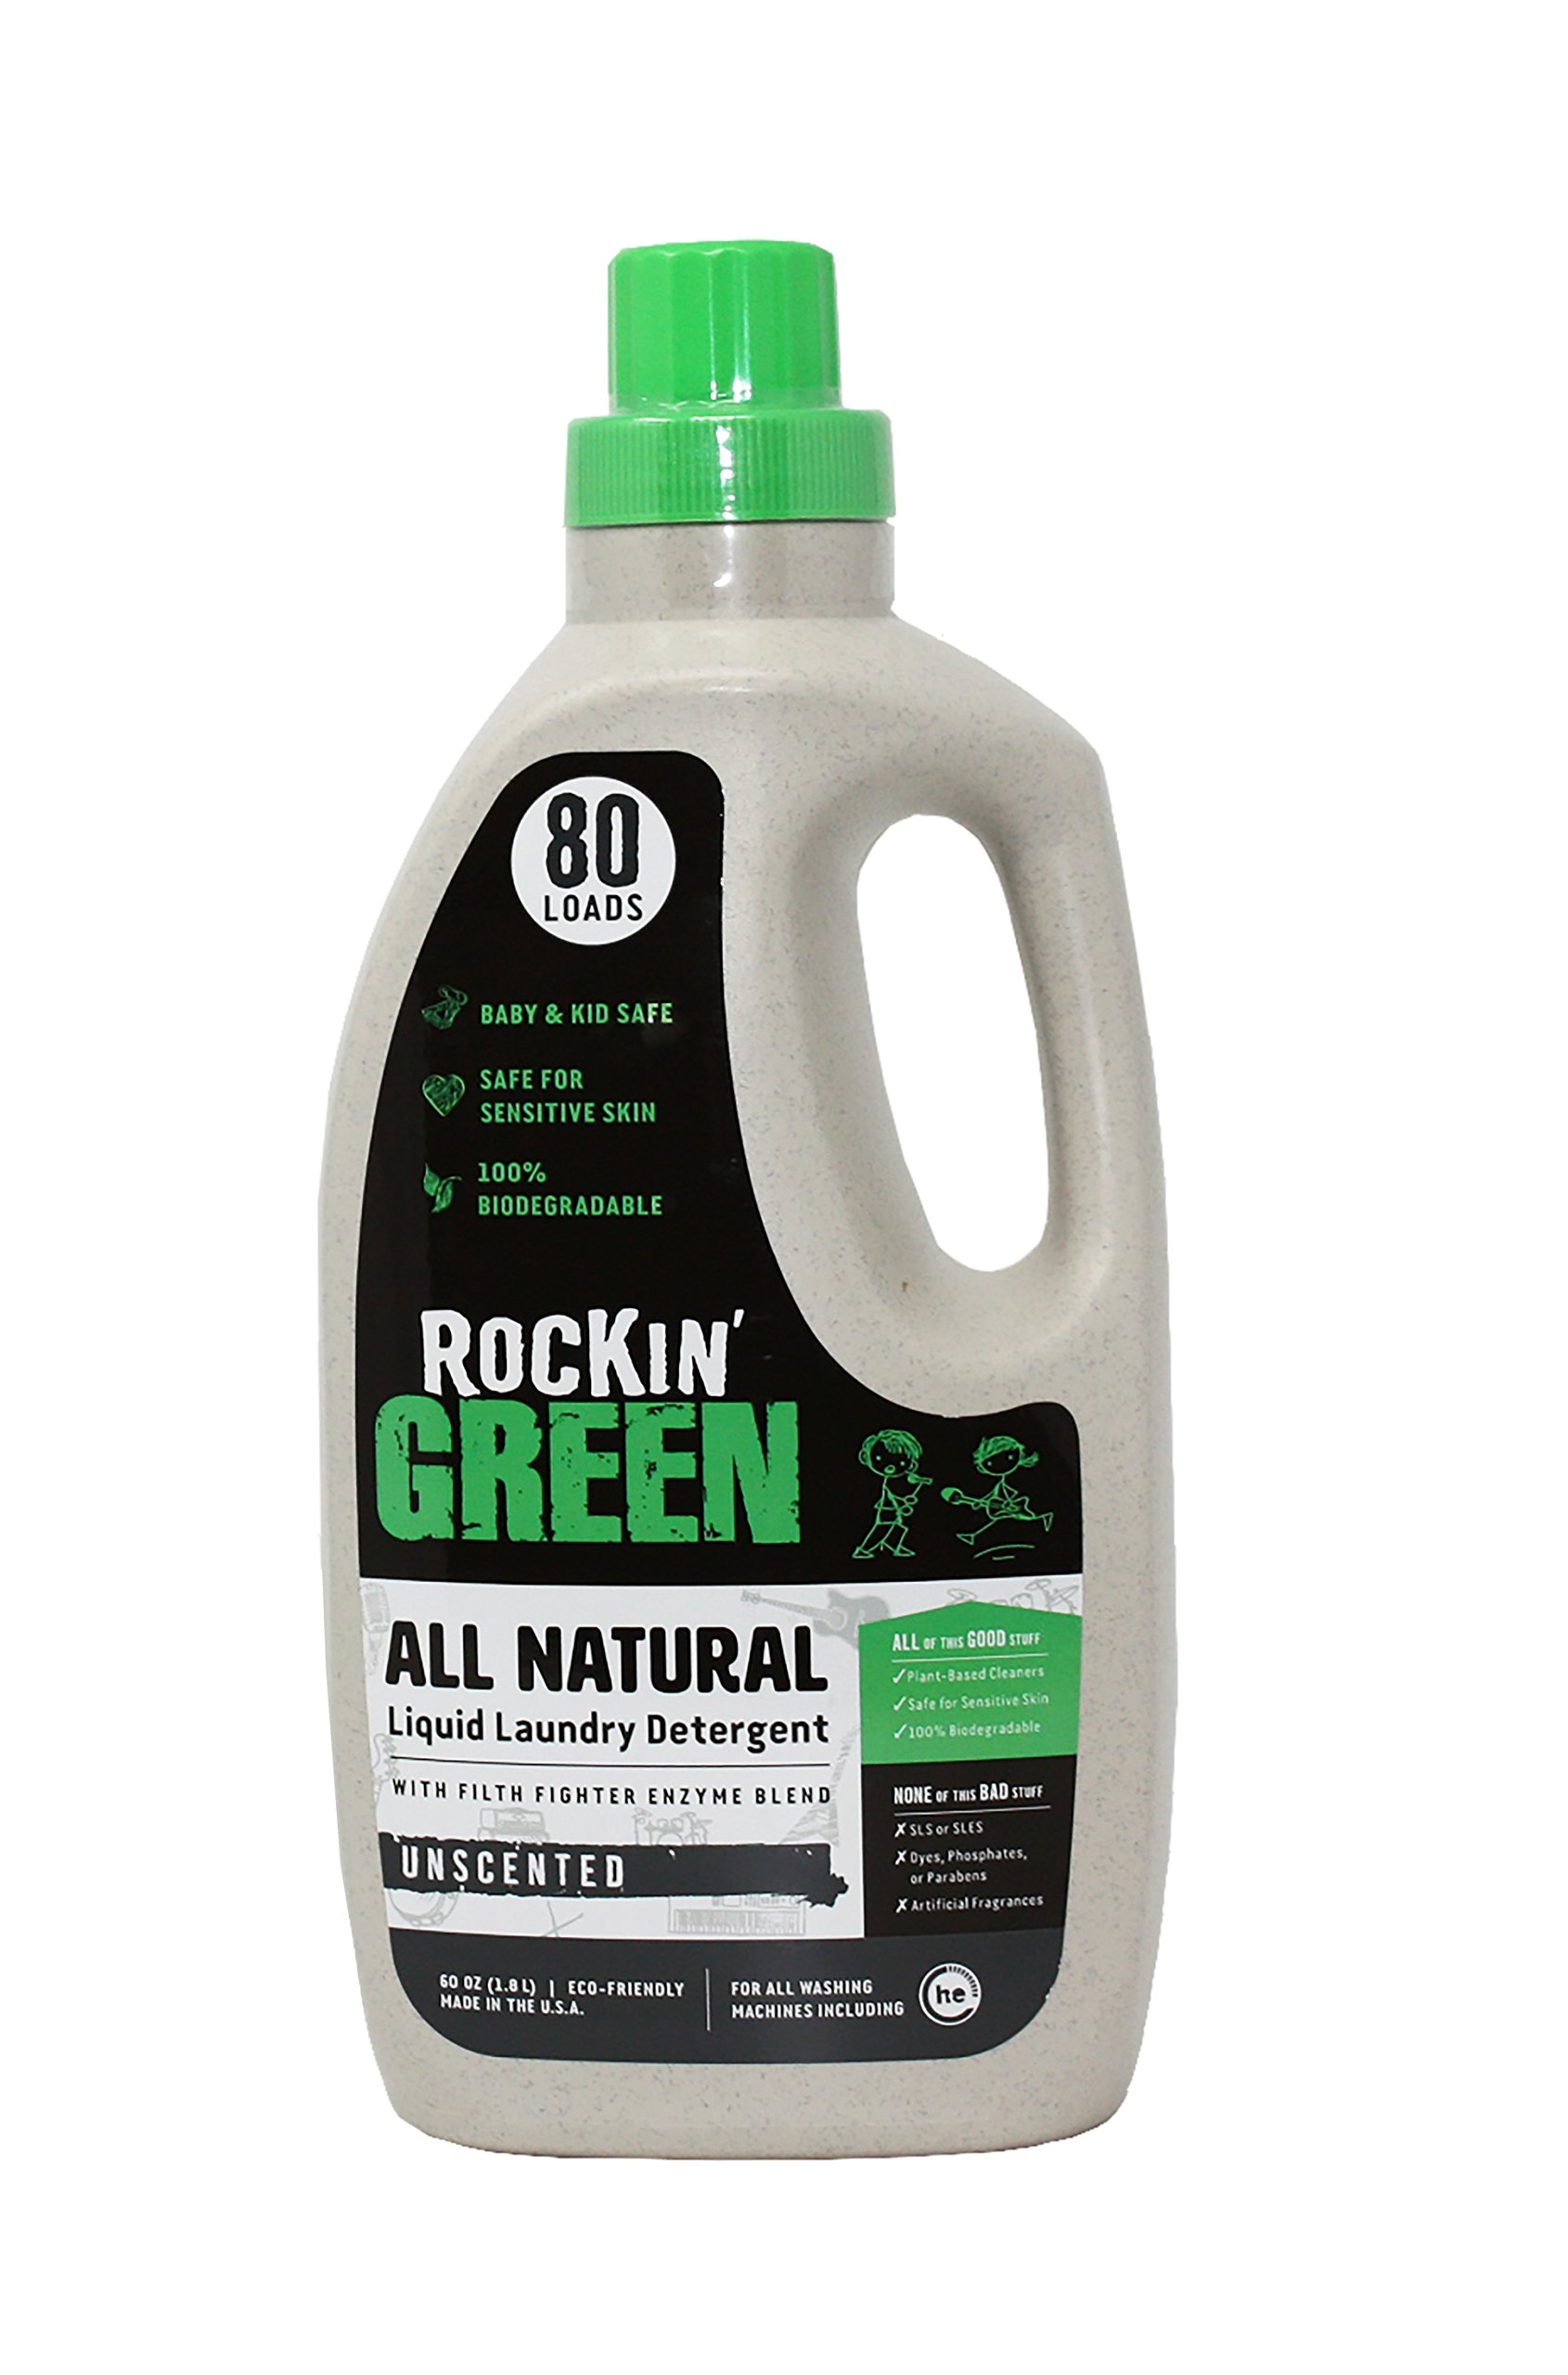 Natural Liquid Laundry Detergent by Rockin' Green, Gentle Yet Powerful Laundry Soap, HE Rated - Up to 80 Loads Per Bottle, Unscented (60 oz)